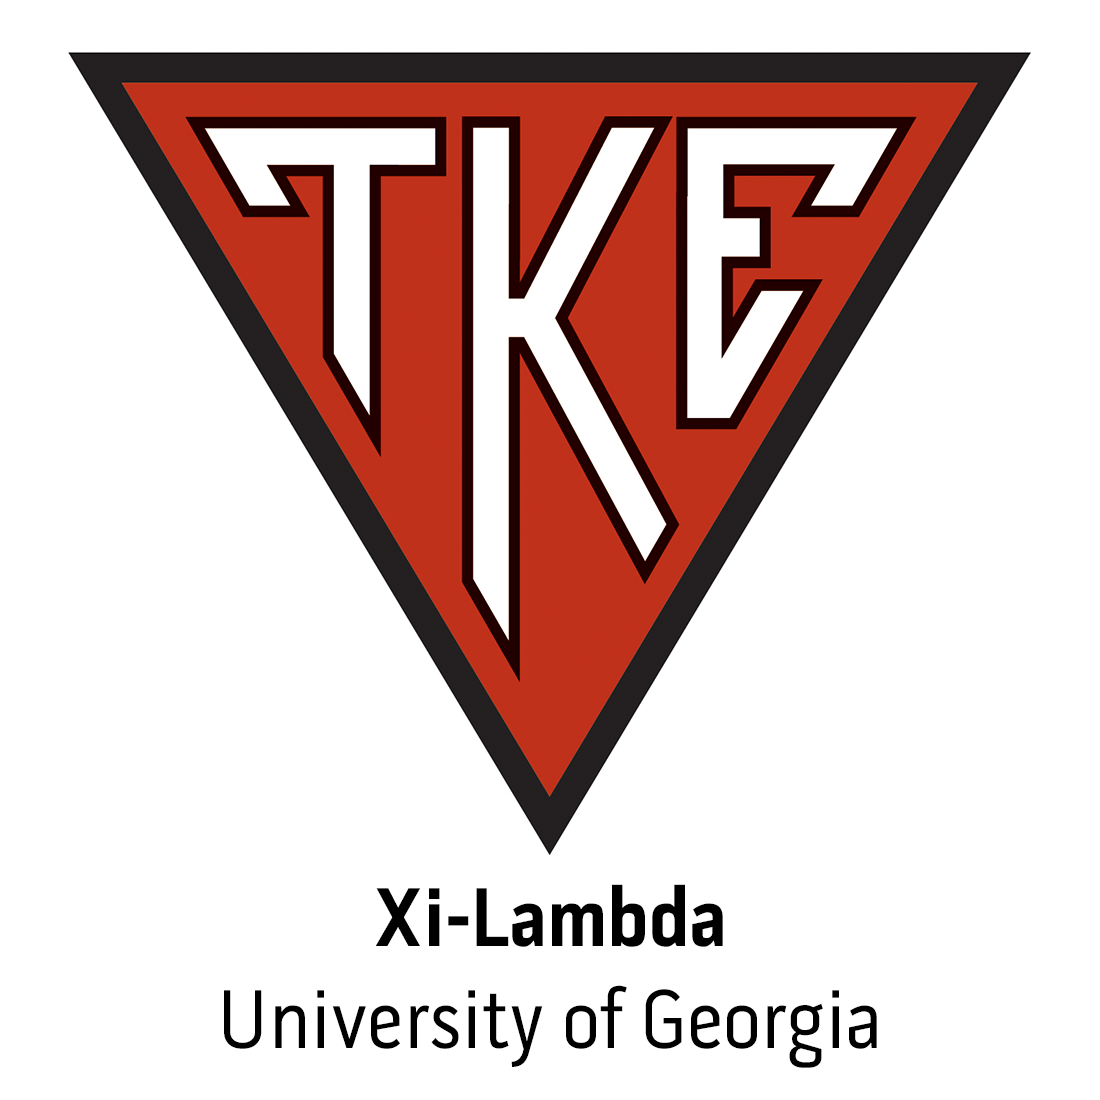 Xi-Lambda Chapter at University of Georgia